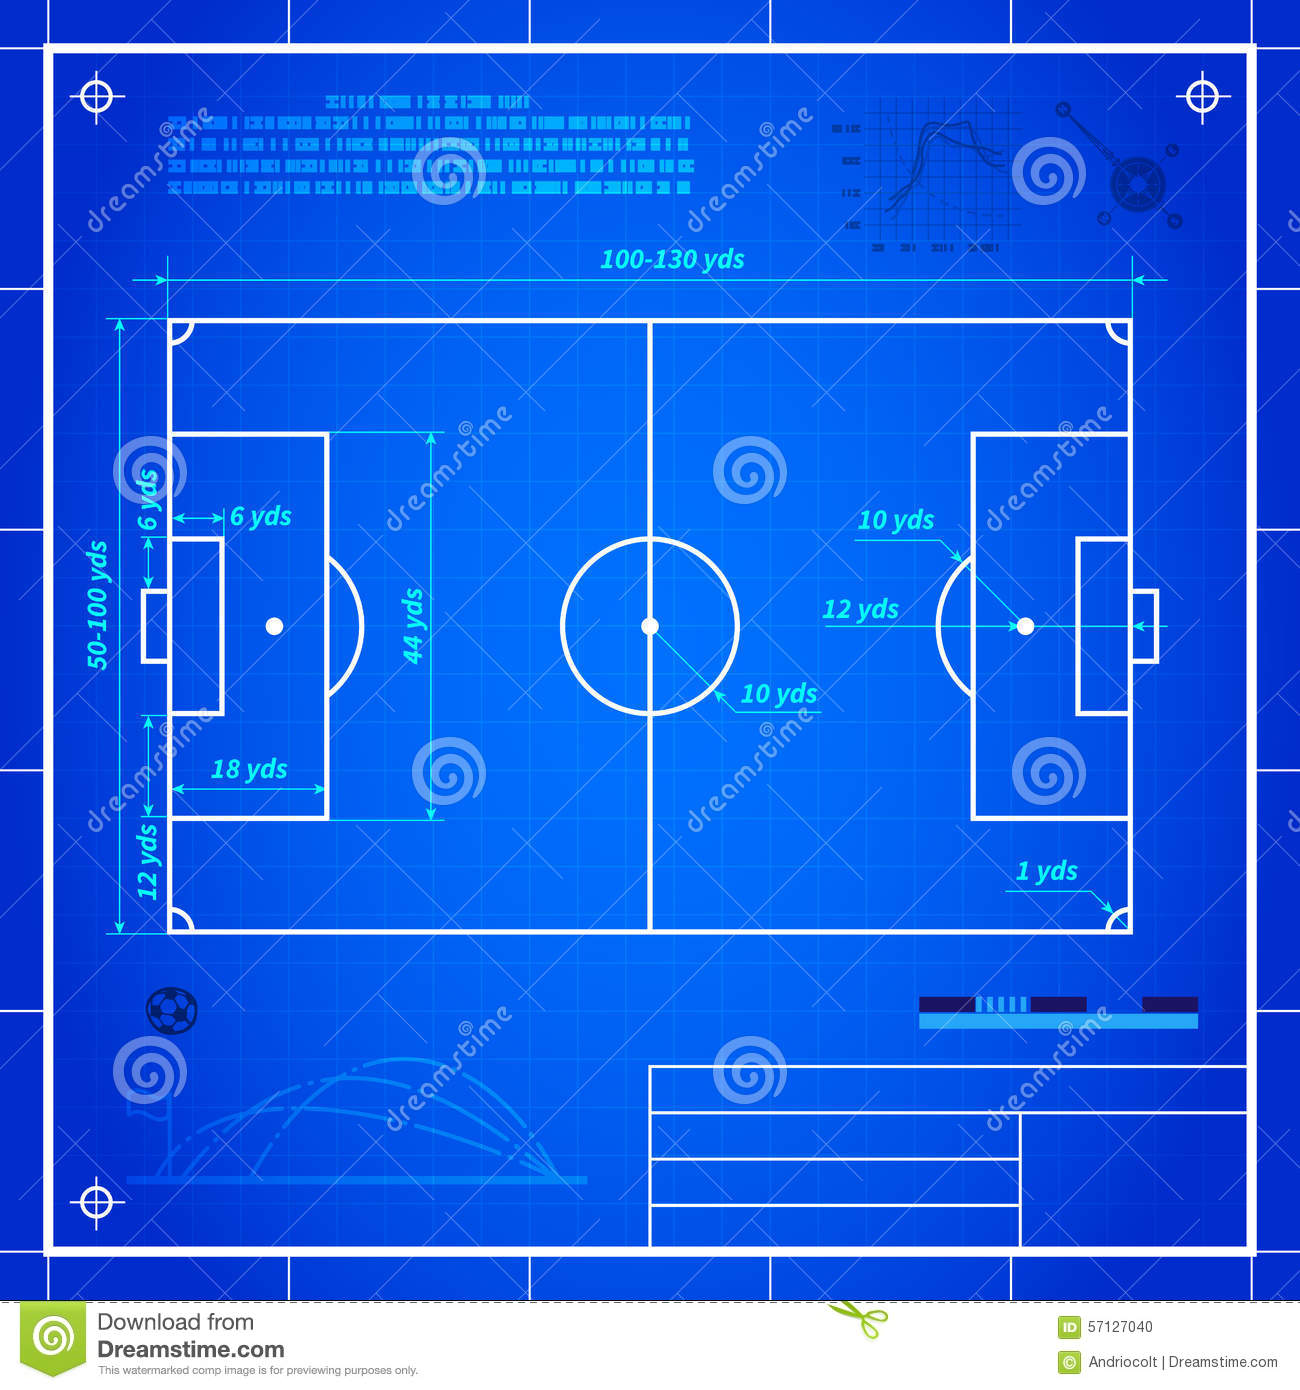 Classic Soccer Of Football Pitch Measurements Stock Vector Illustration Of Aerial Design 57127040